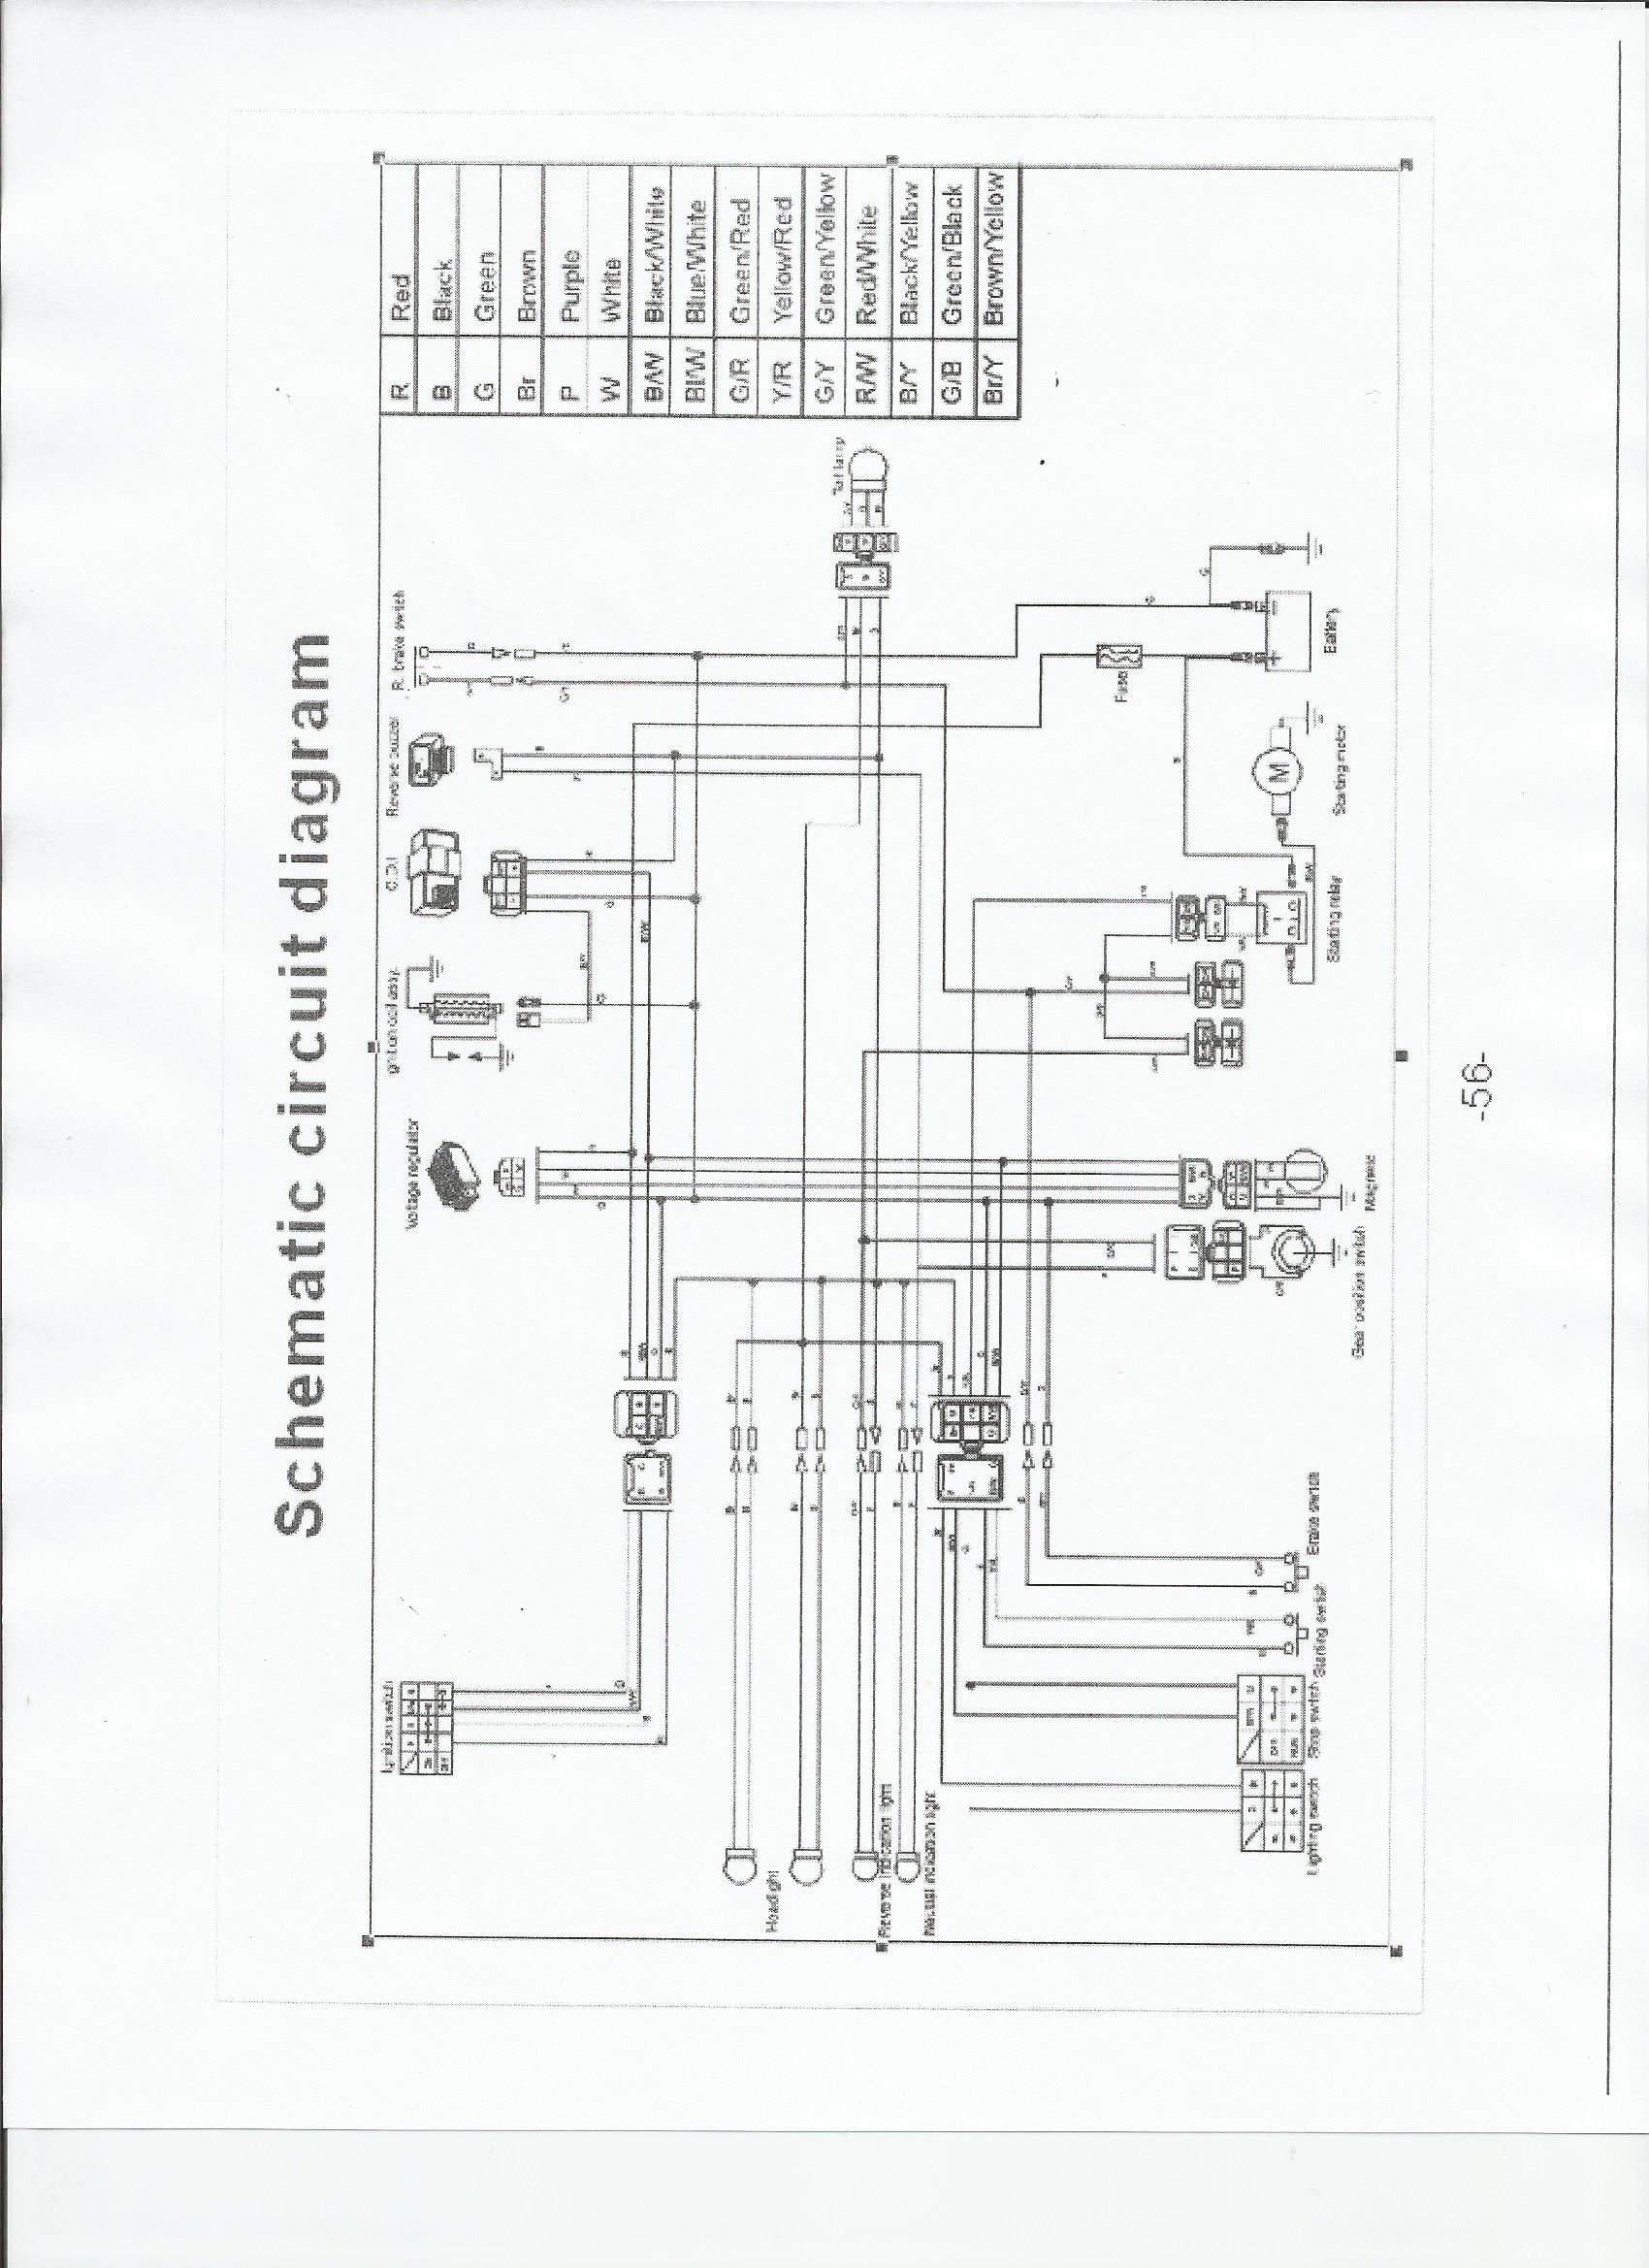 tao tao wiring schematic taotao mini and youth atv wiring schematic familygokarts support tao tao 125 wiring harness at gsmx.co